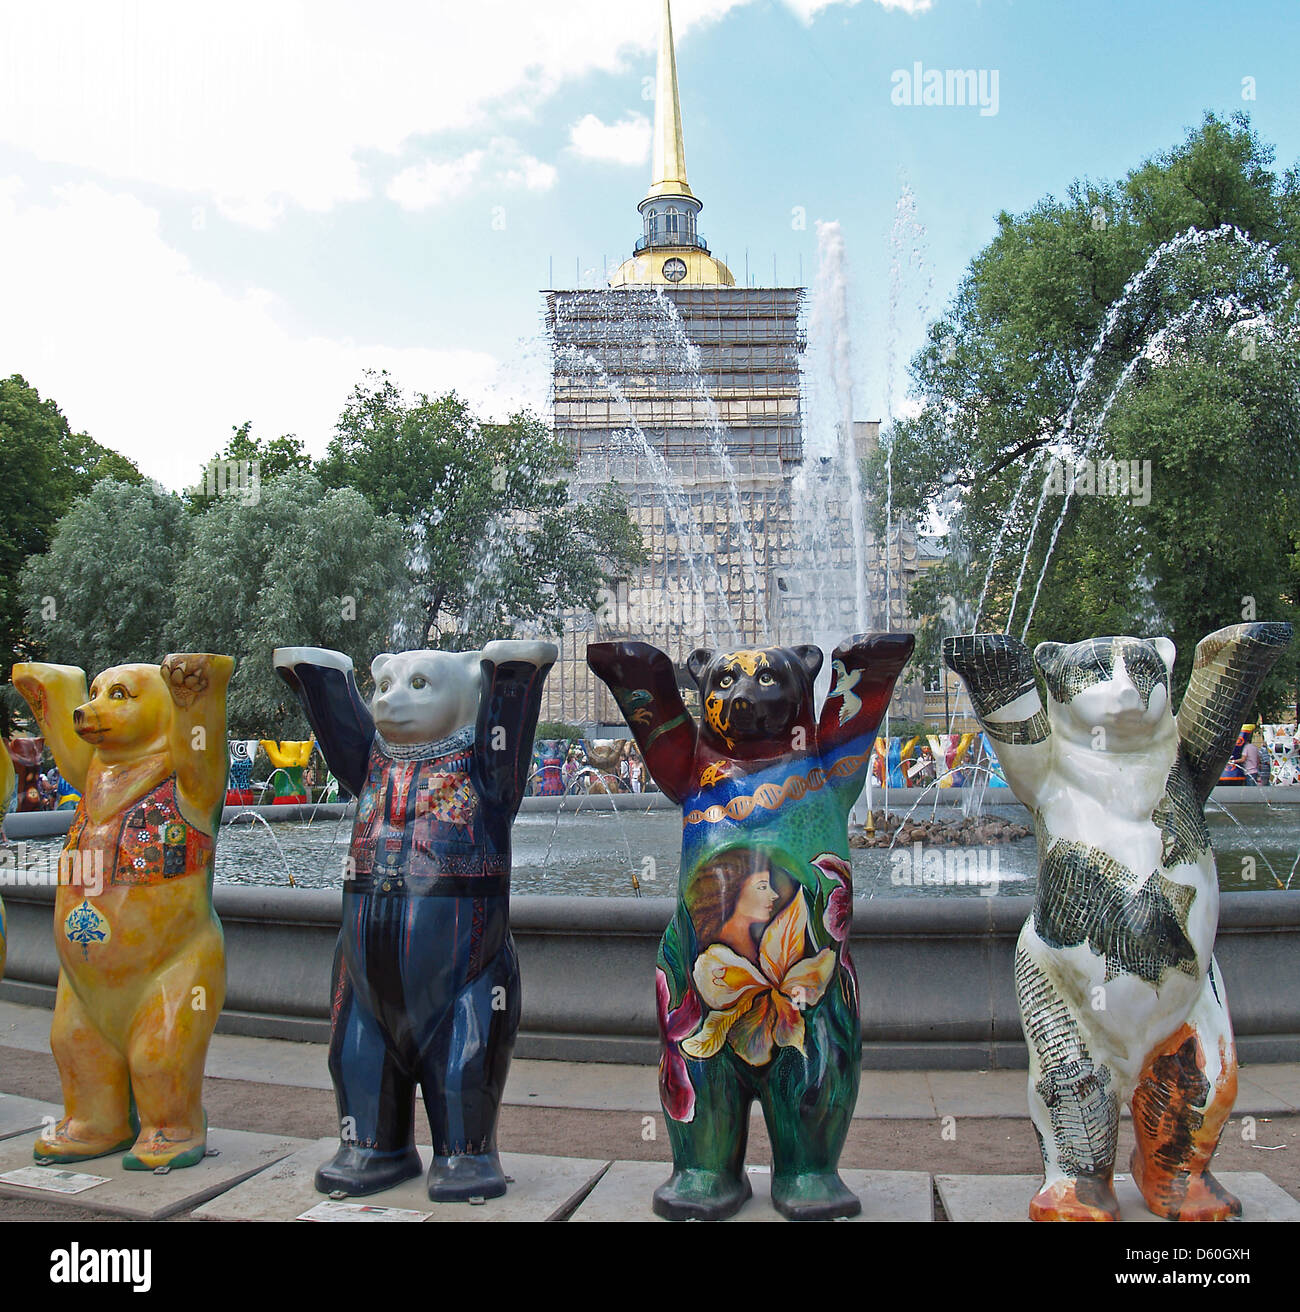 The United Buddy Bears in St.Petersburg,Russia - Stock Image